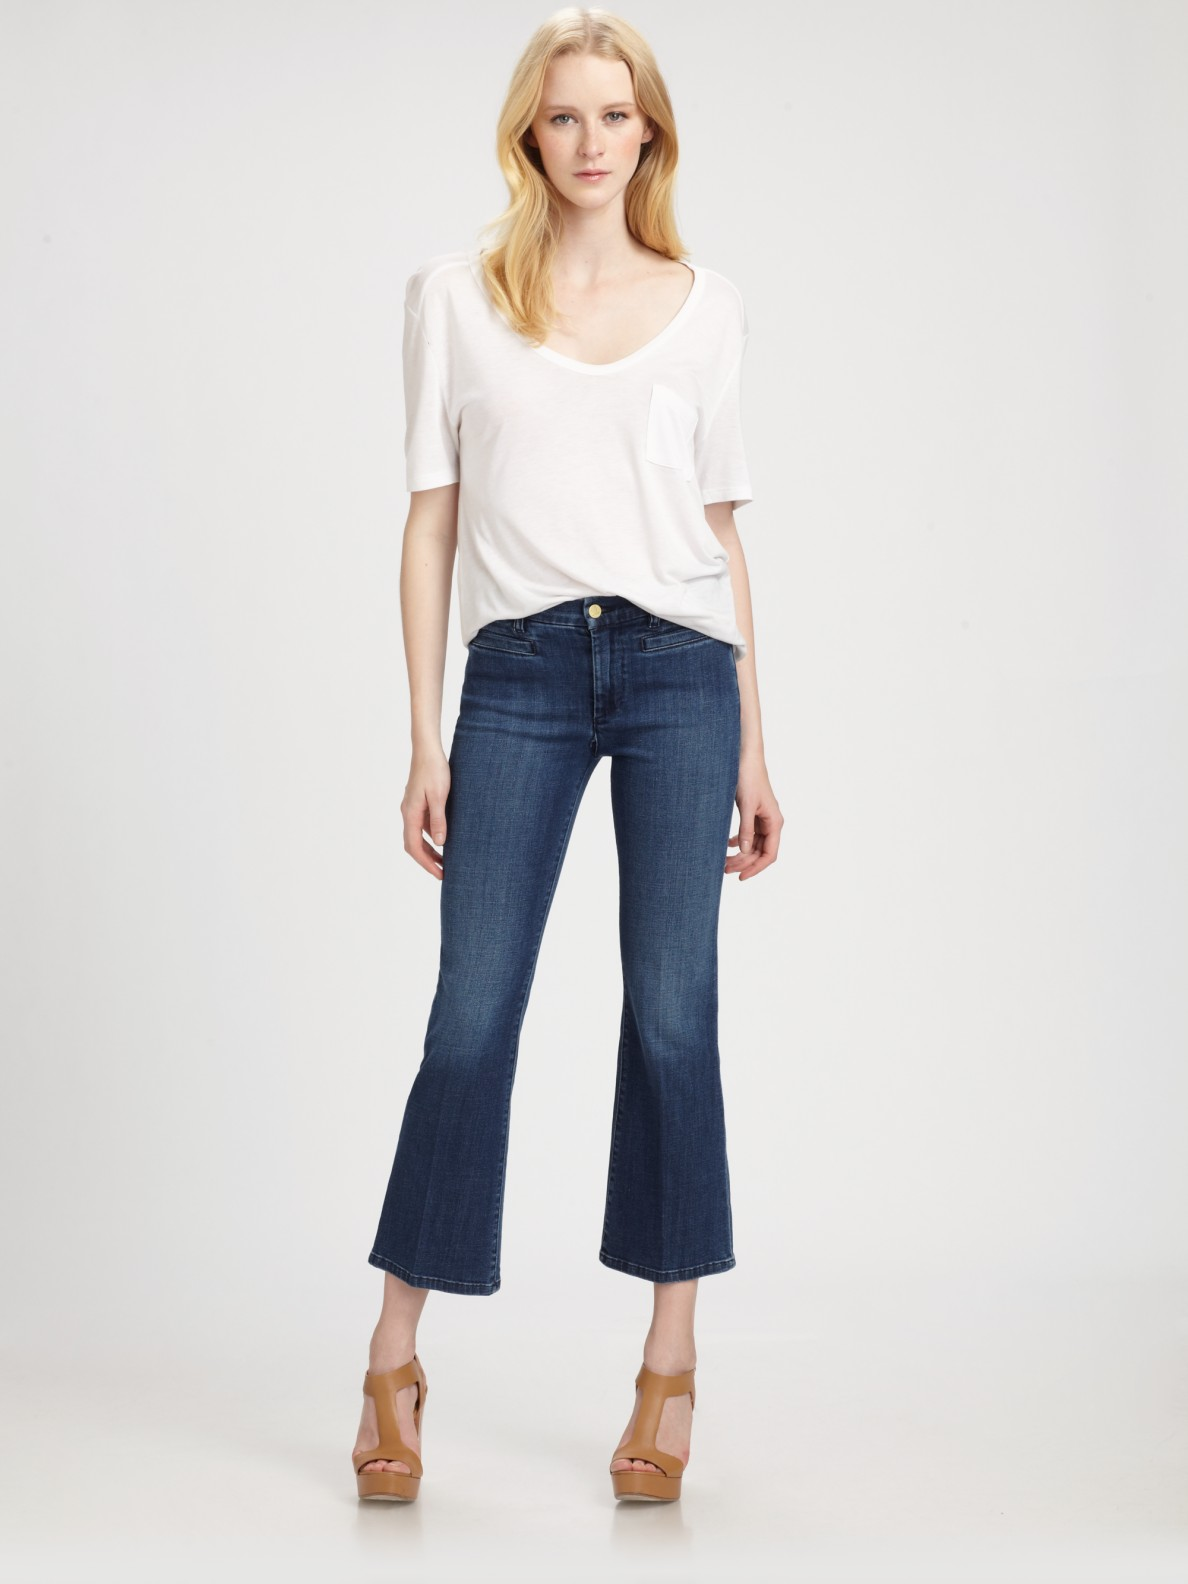 mih jeans blue monaco cropped kick flare jeans product 1 3038217 160210768